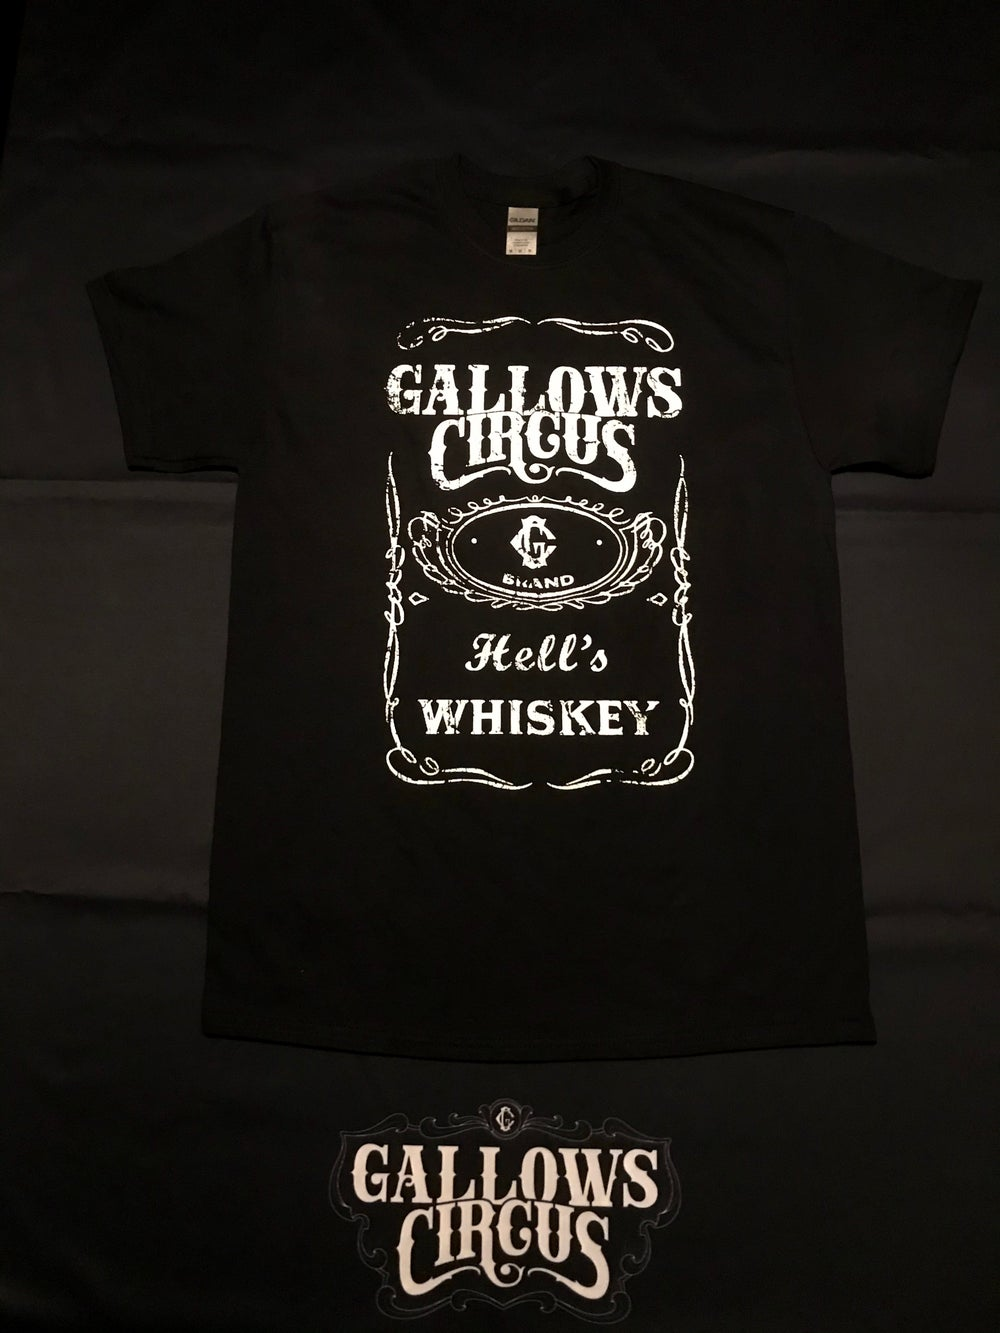 Hells whiskey T-shirt Black